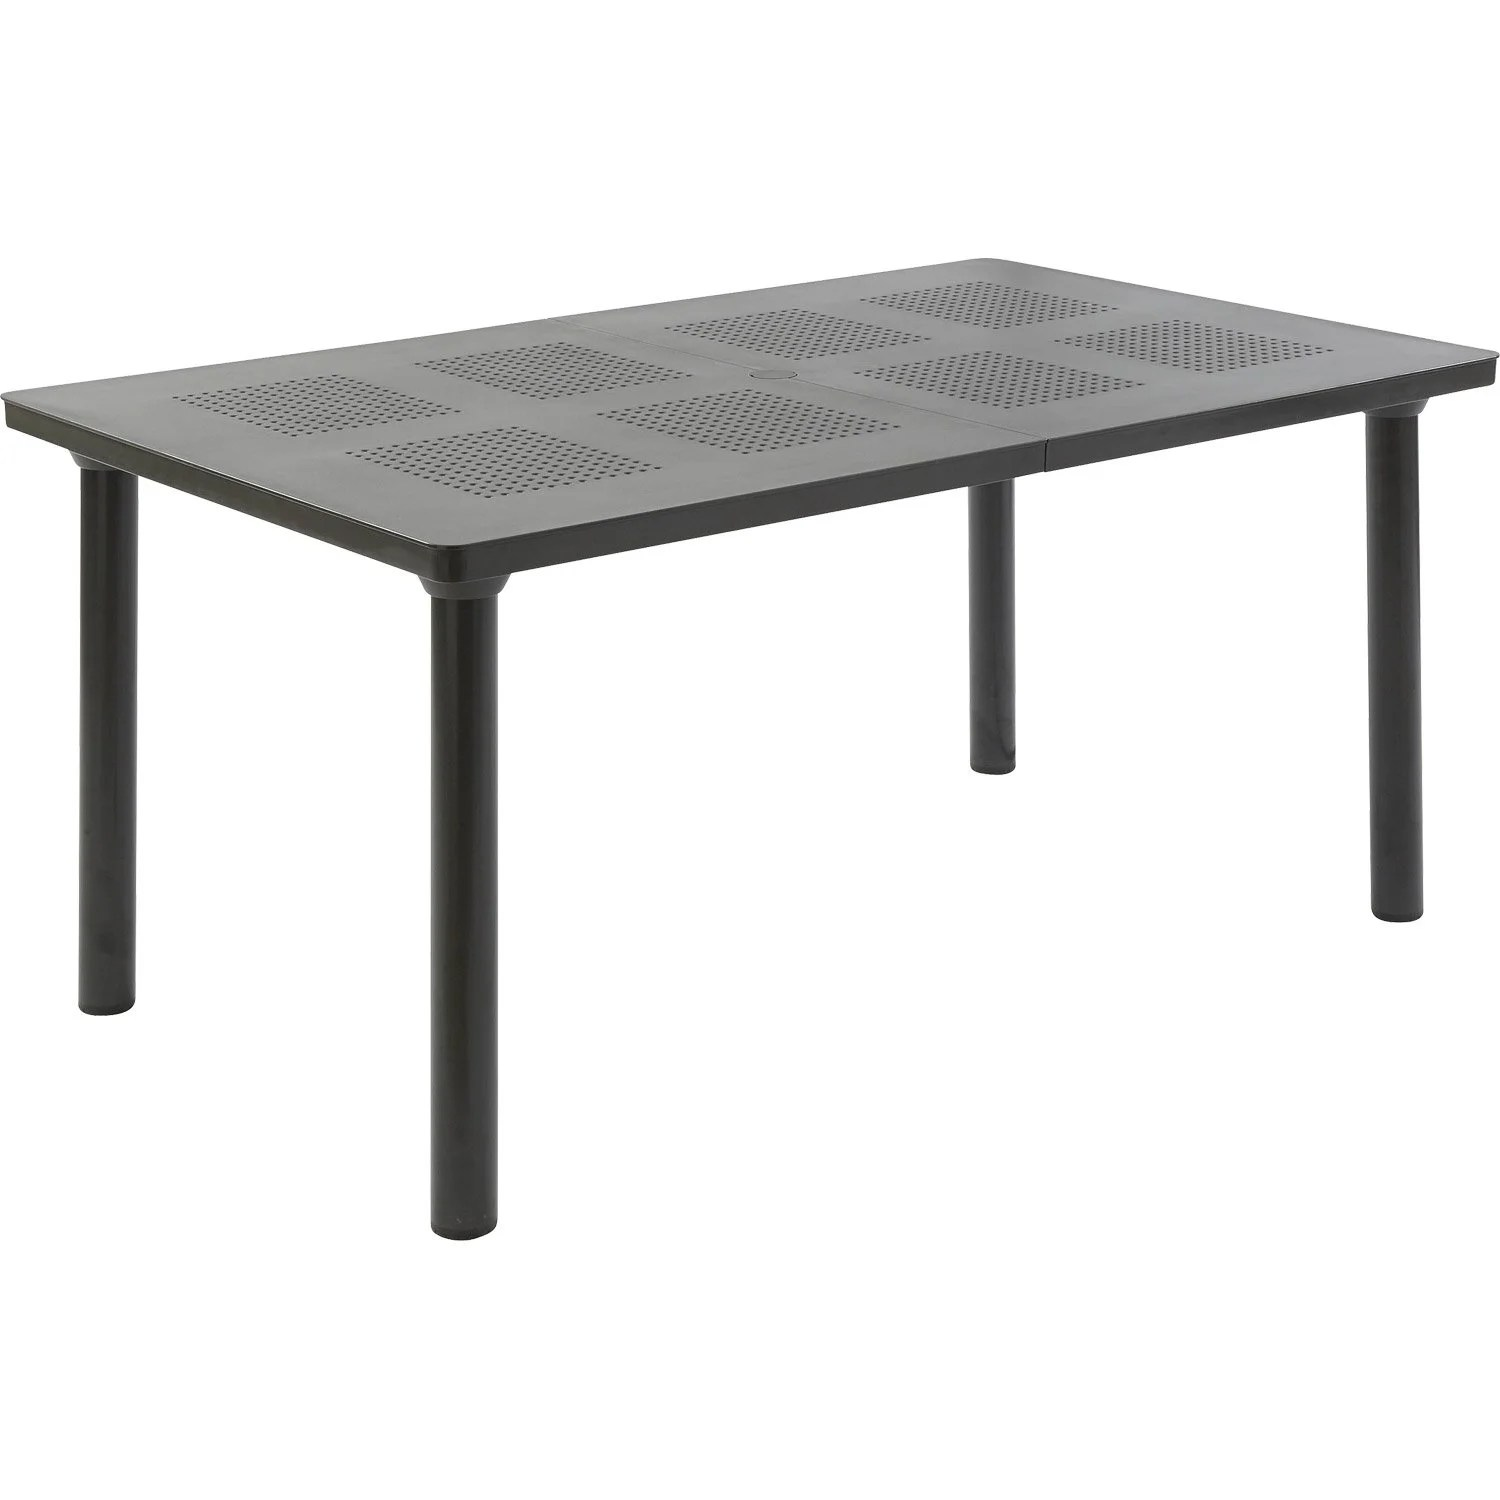 Leroy Merlin Table De Jardin Table De Jardin En Résine Libeccio Gris Antracithe Nardi